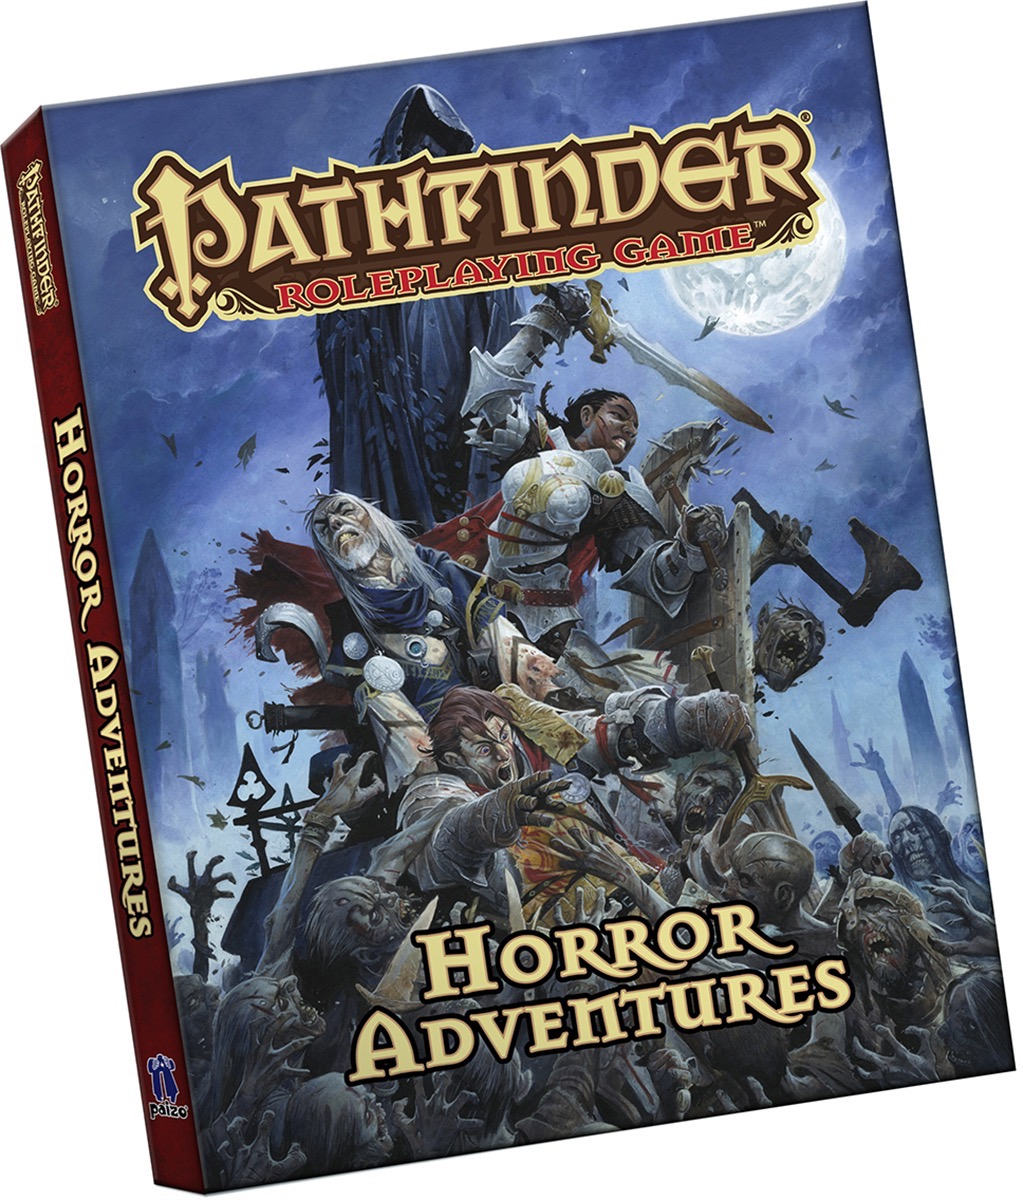 Cover of the Pathfinder Roleplaying Game: Horror Adventures Pocket Edition